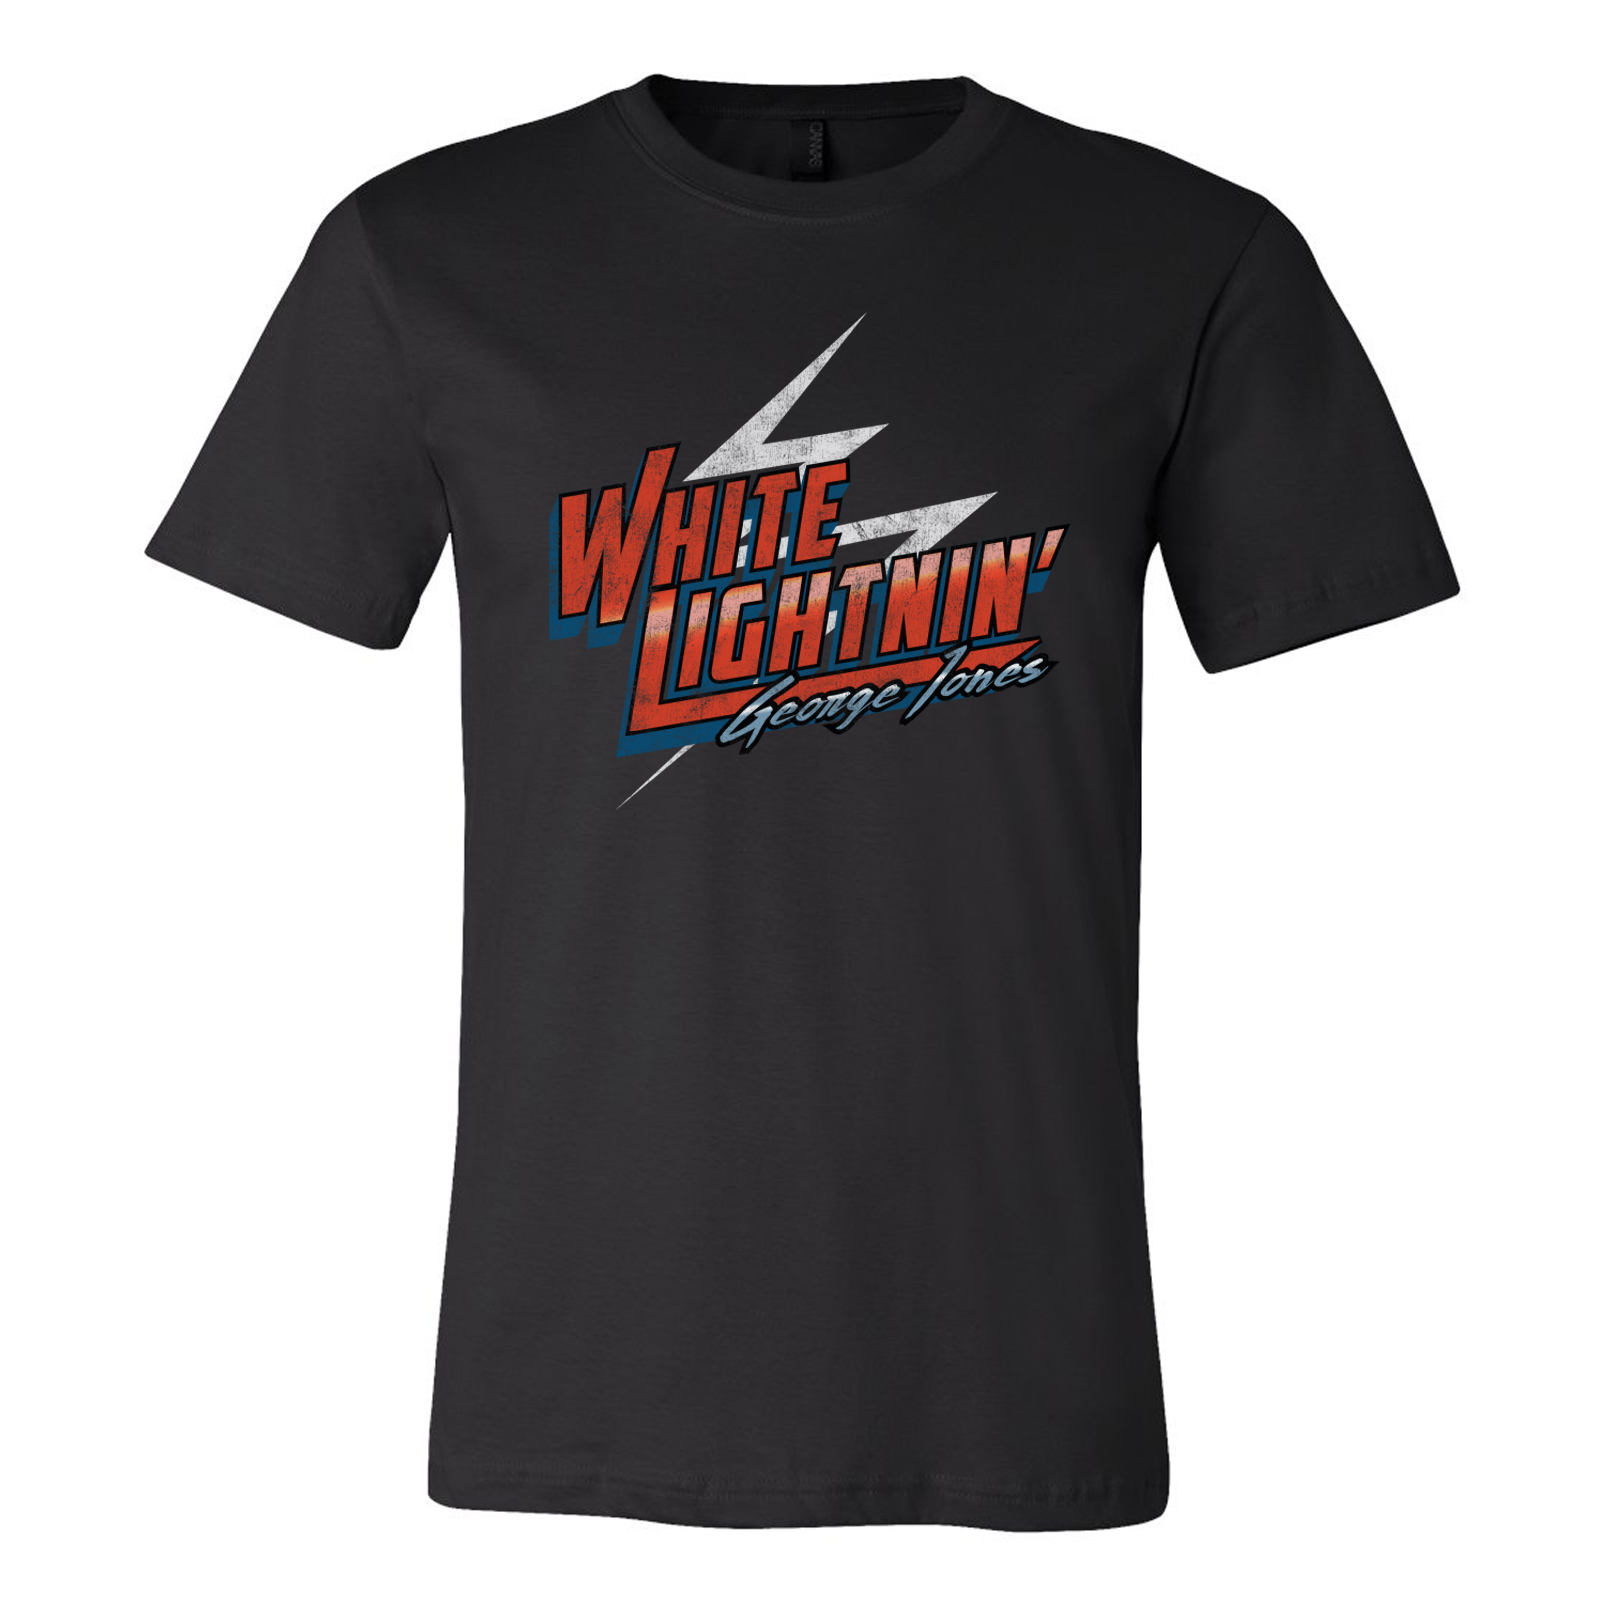 White Lightnin' T-Shirt